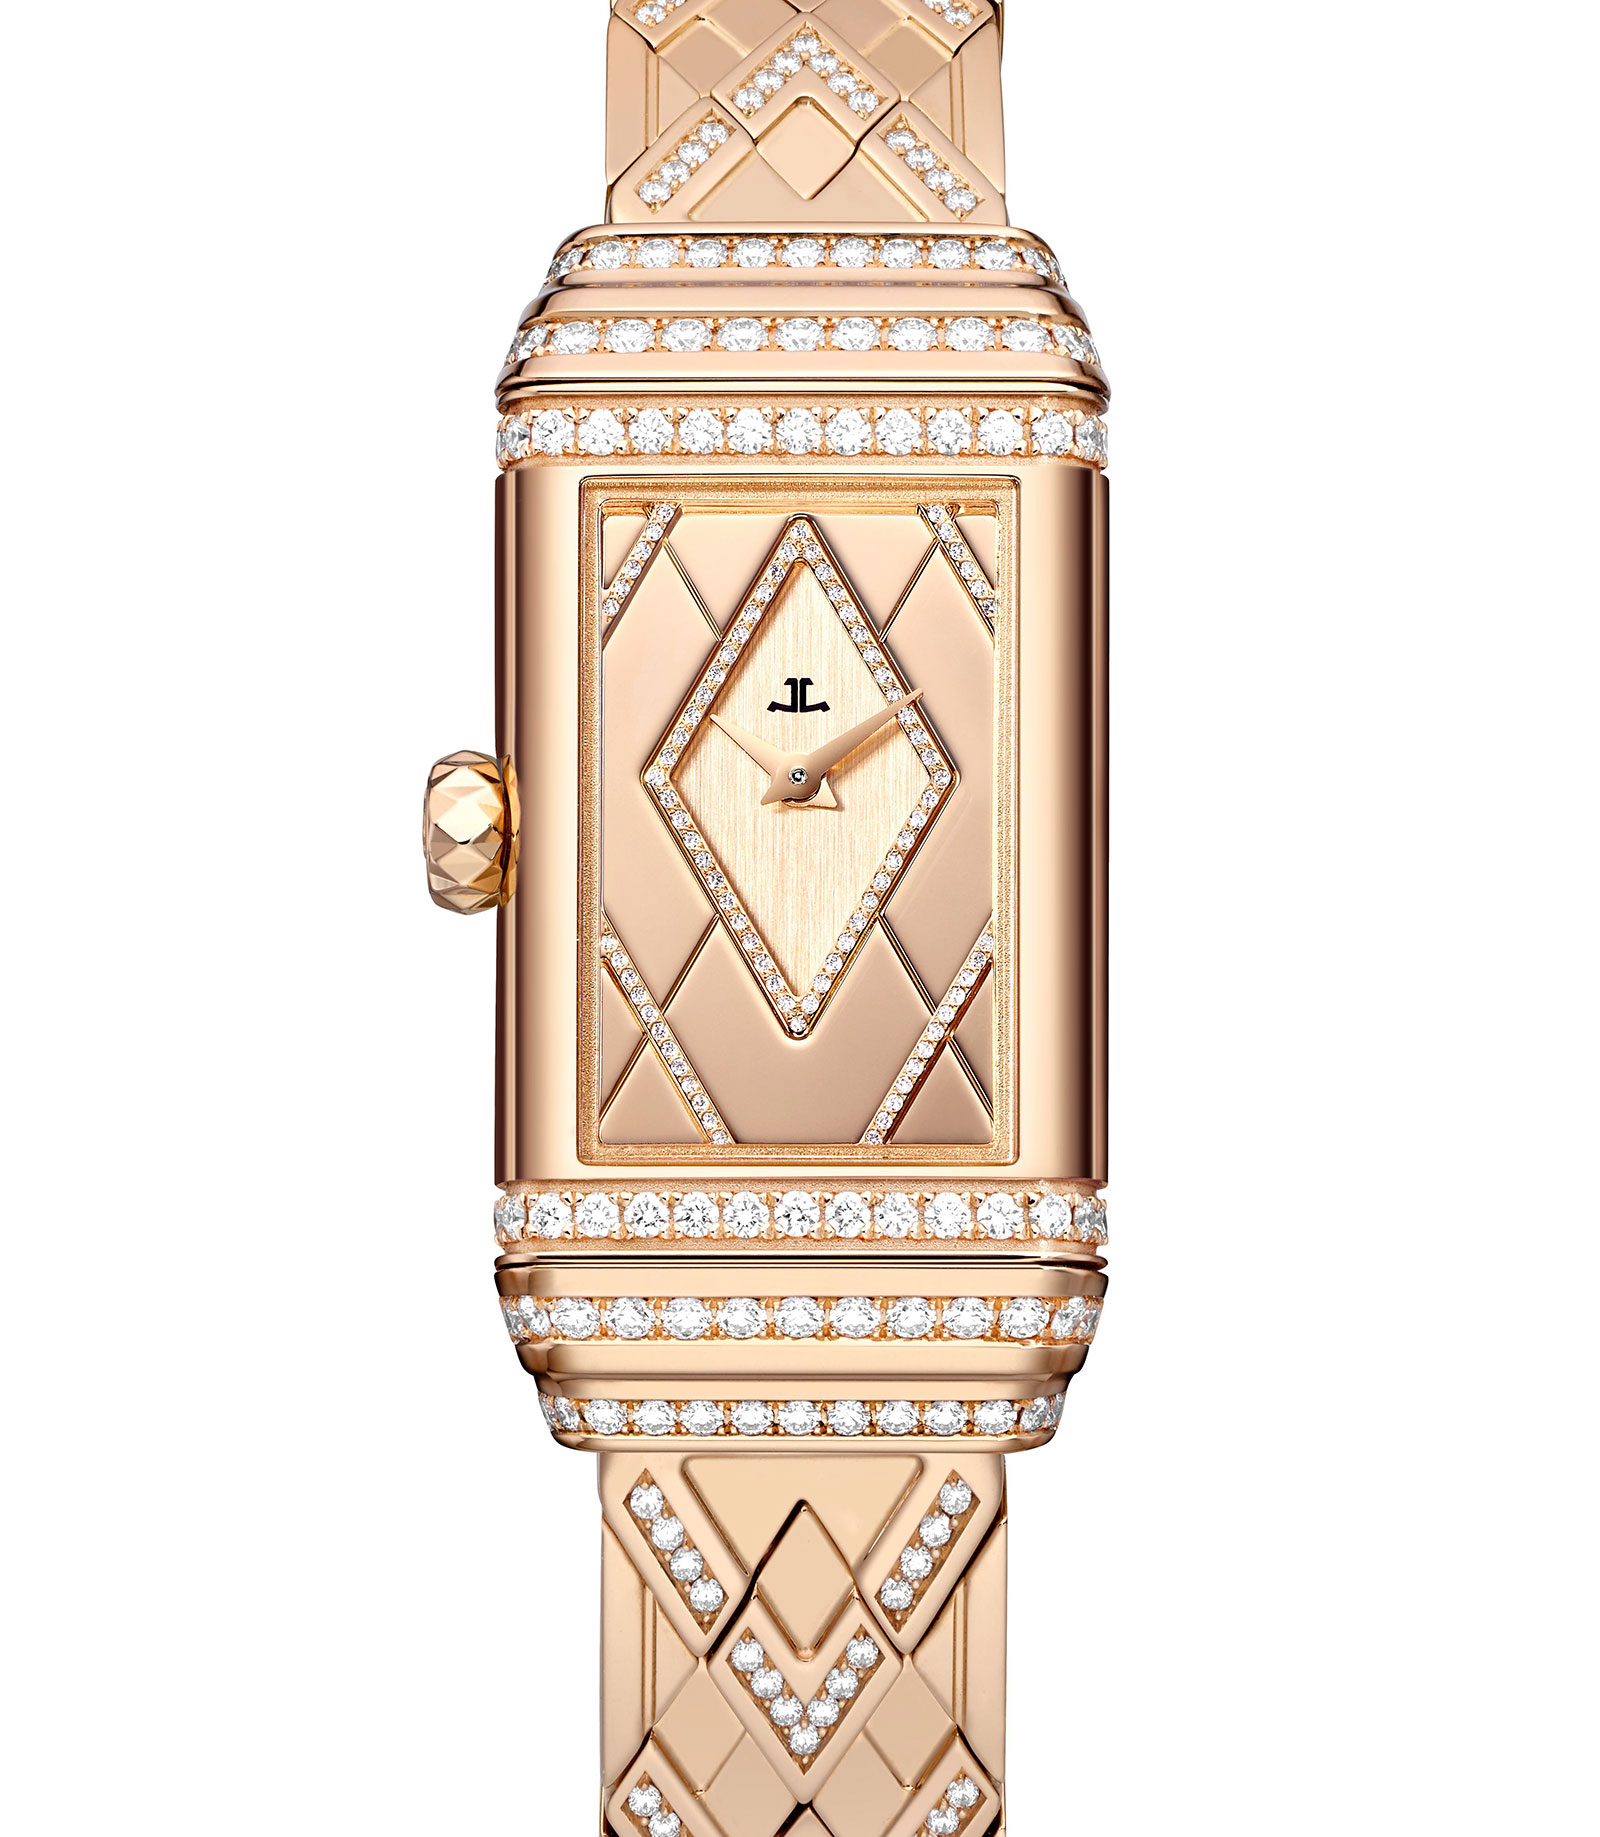 Jaeger-LeCoultre Reverso One Duetto Jewelry 2